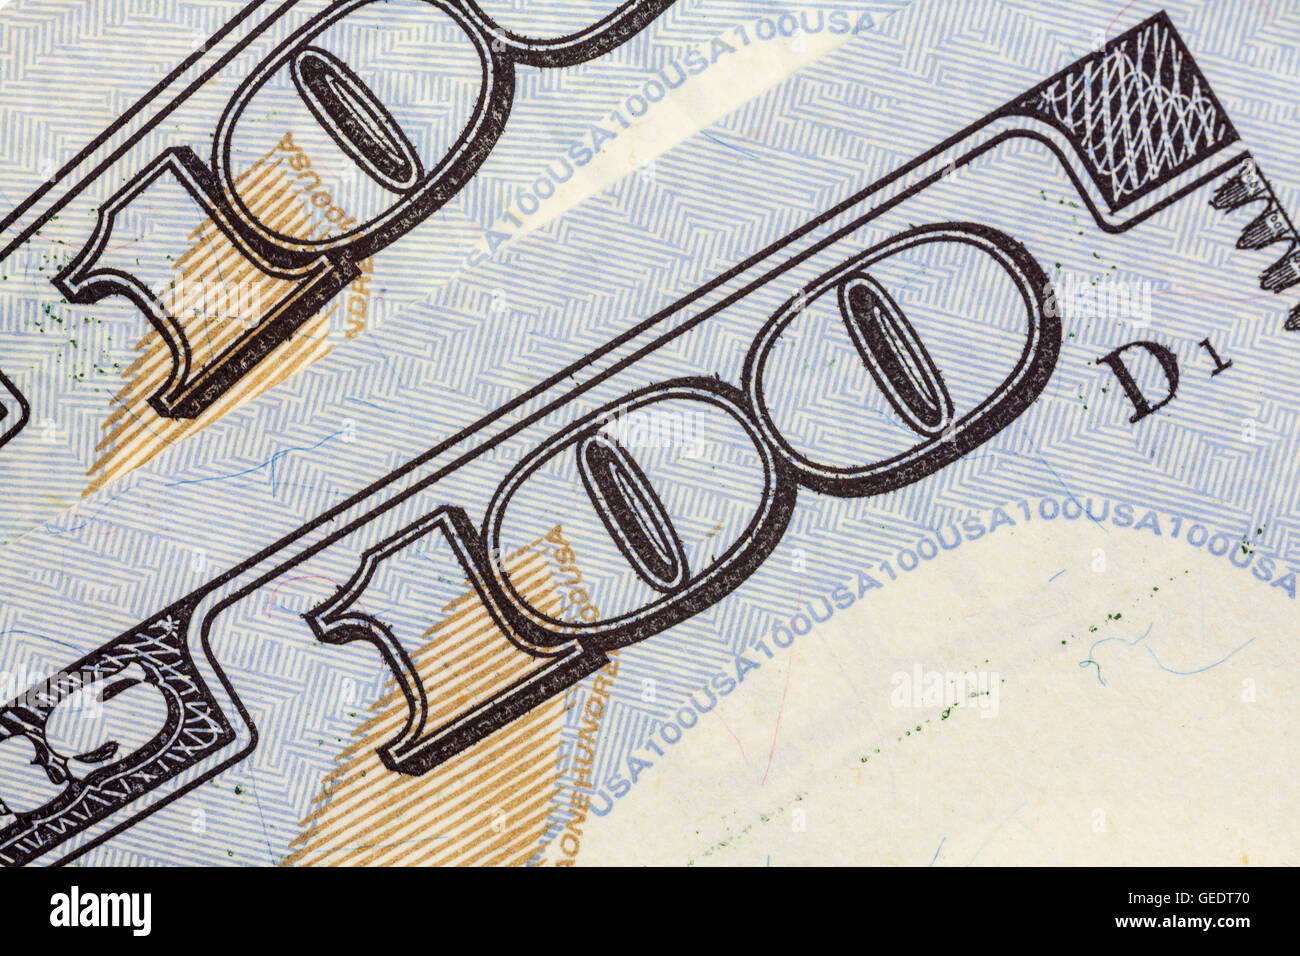 US One Hundred dollar bill macro detail close up. - Stock Image